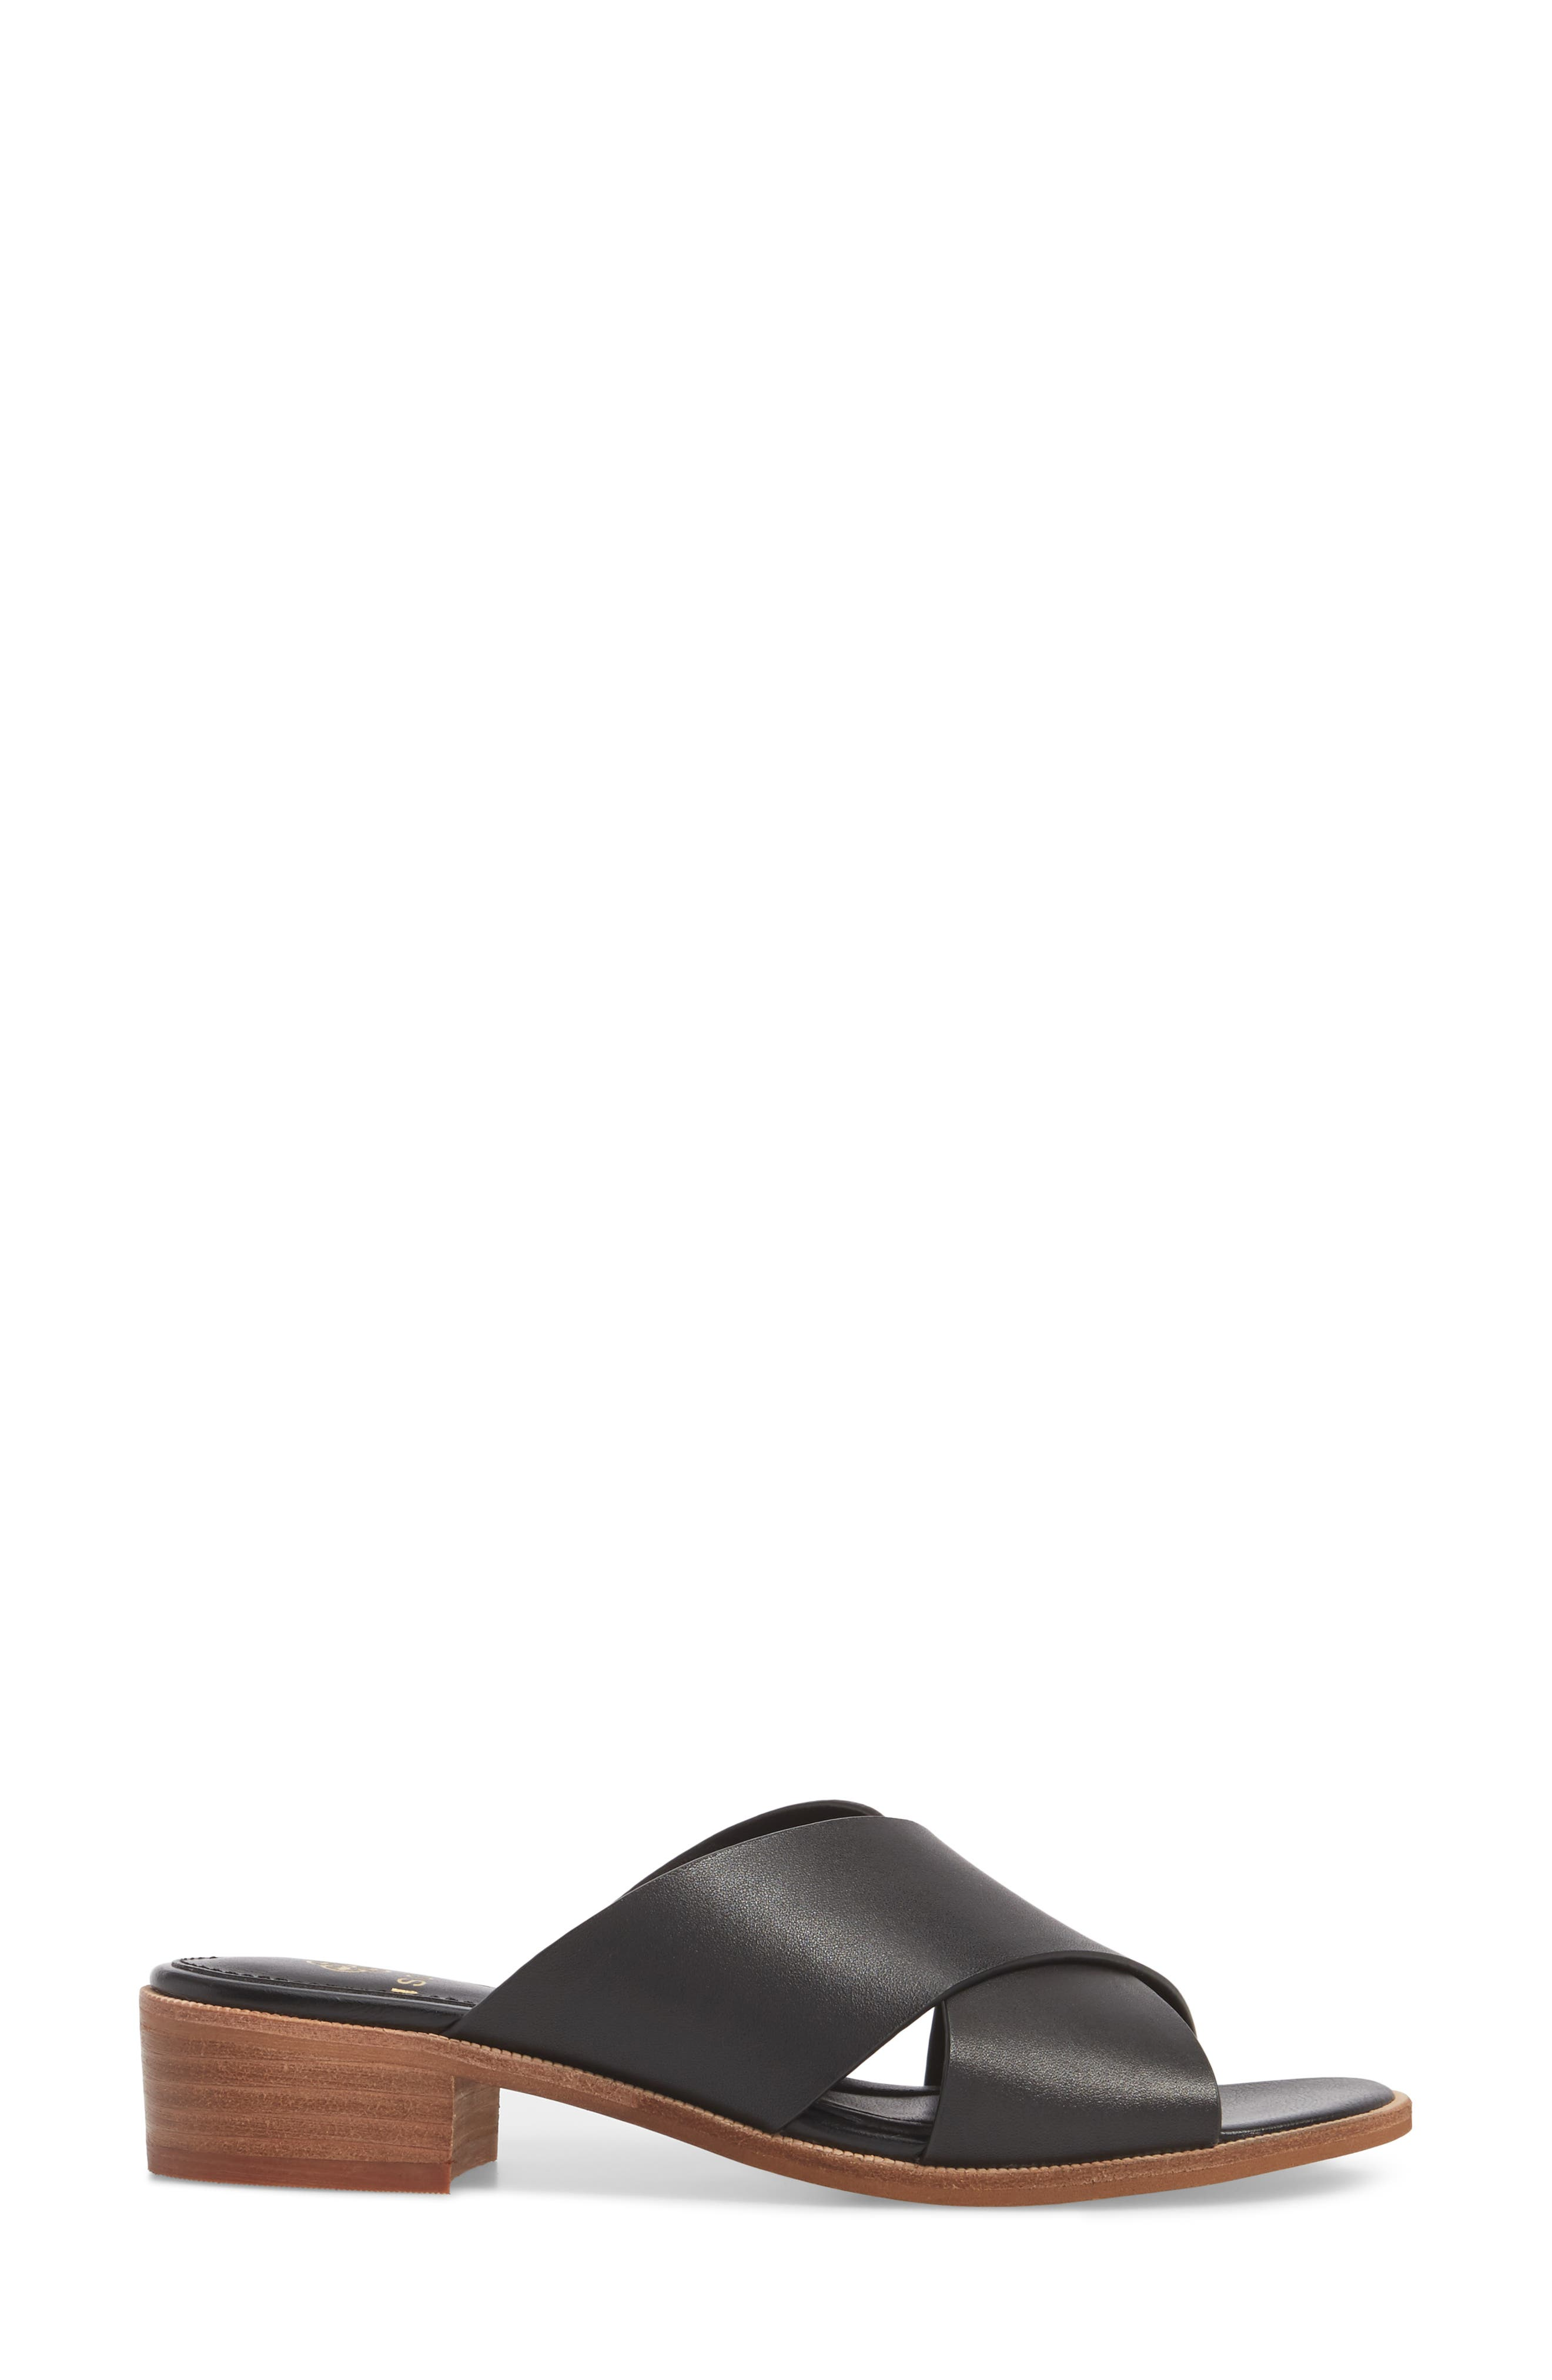 Isola Ginata Slide Sandal,                             Alternate thumbnail 3, color,                             Black Leather